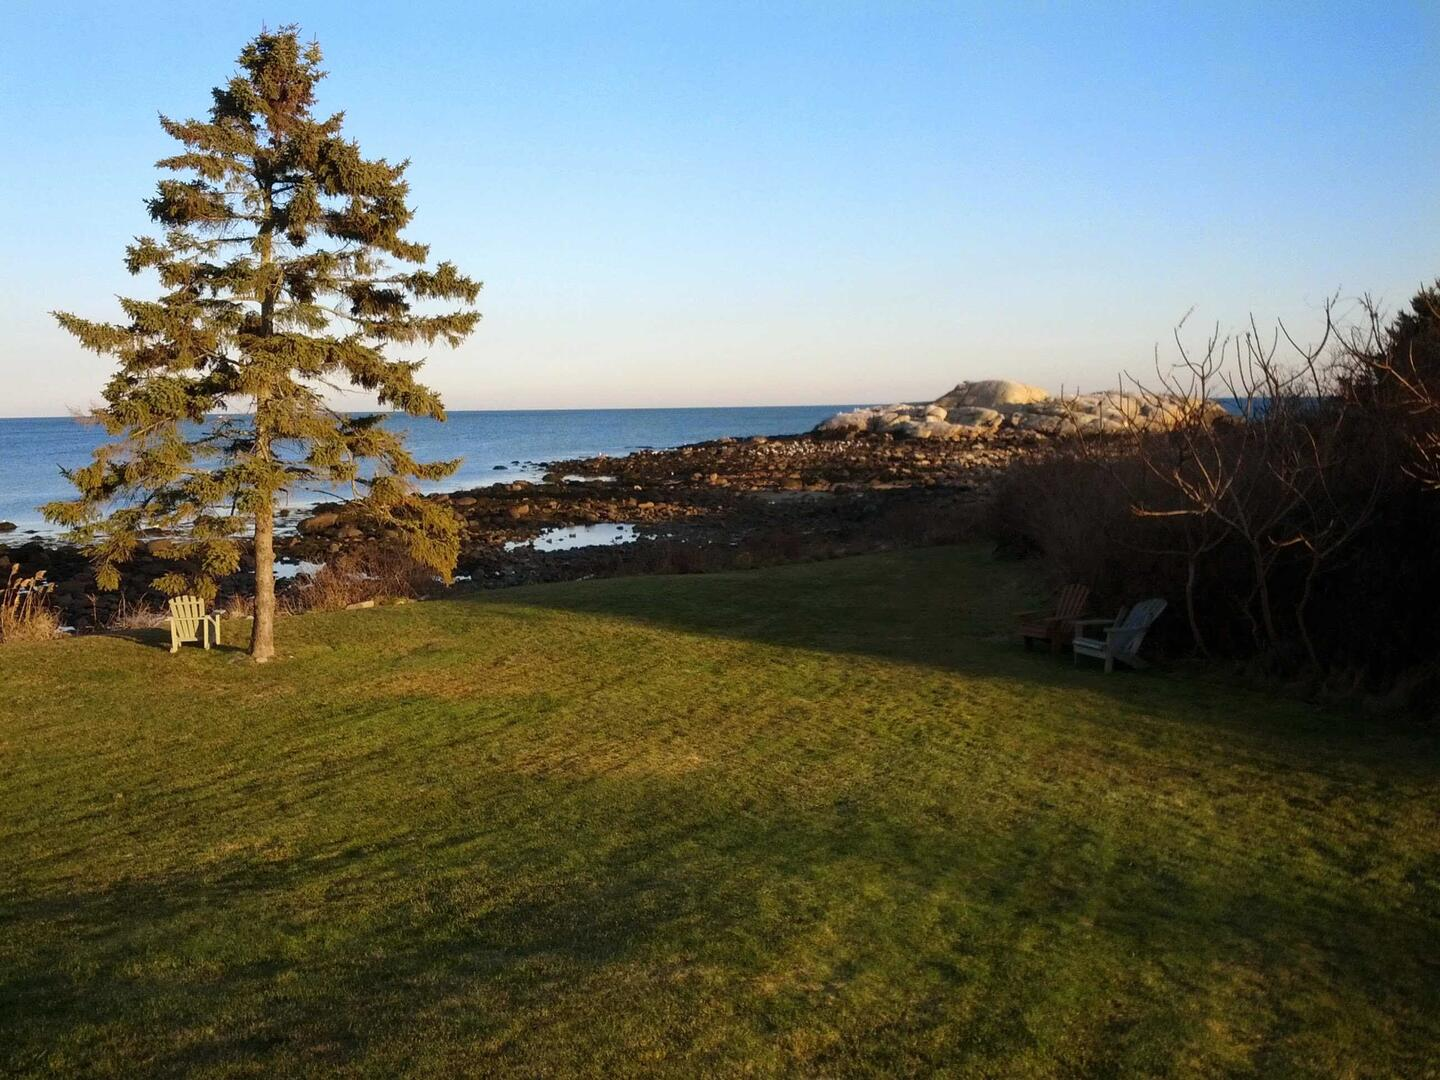 View of the Atlantic from the Eastern Point Retreat House in Gloucester, Mass. (Photo by author)